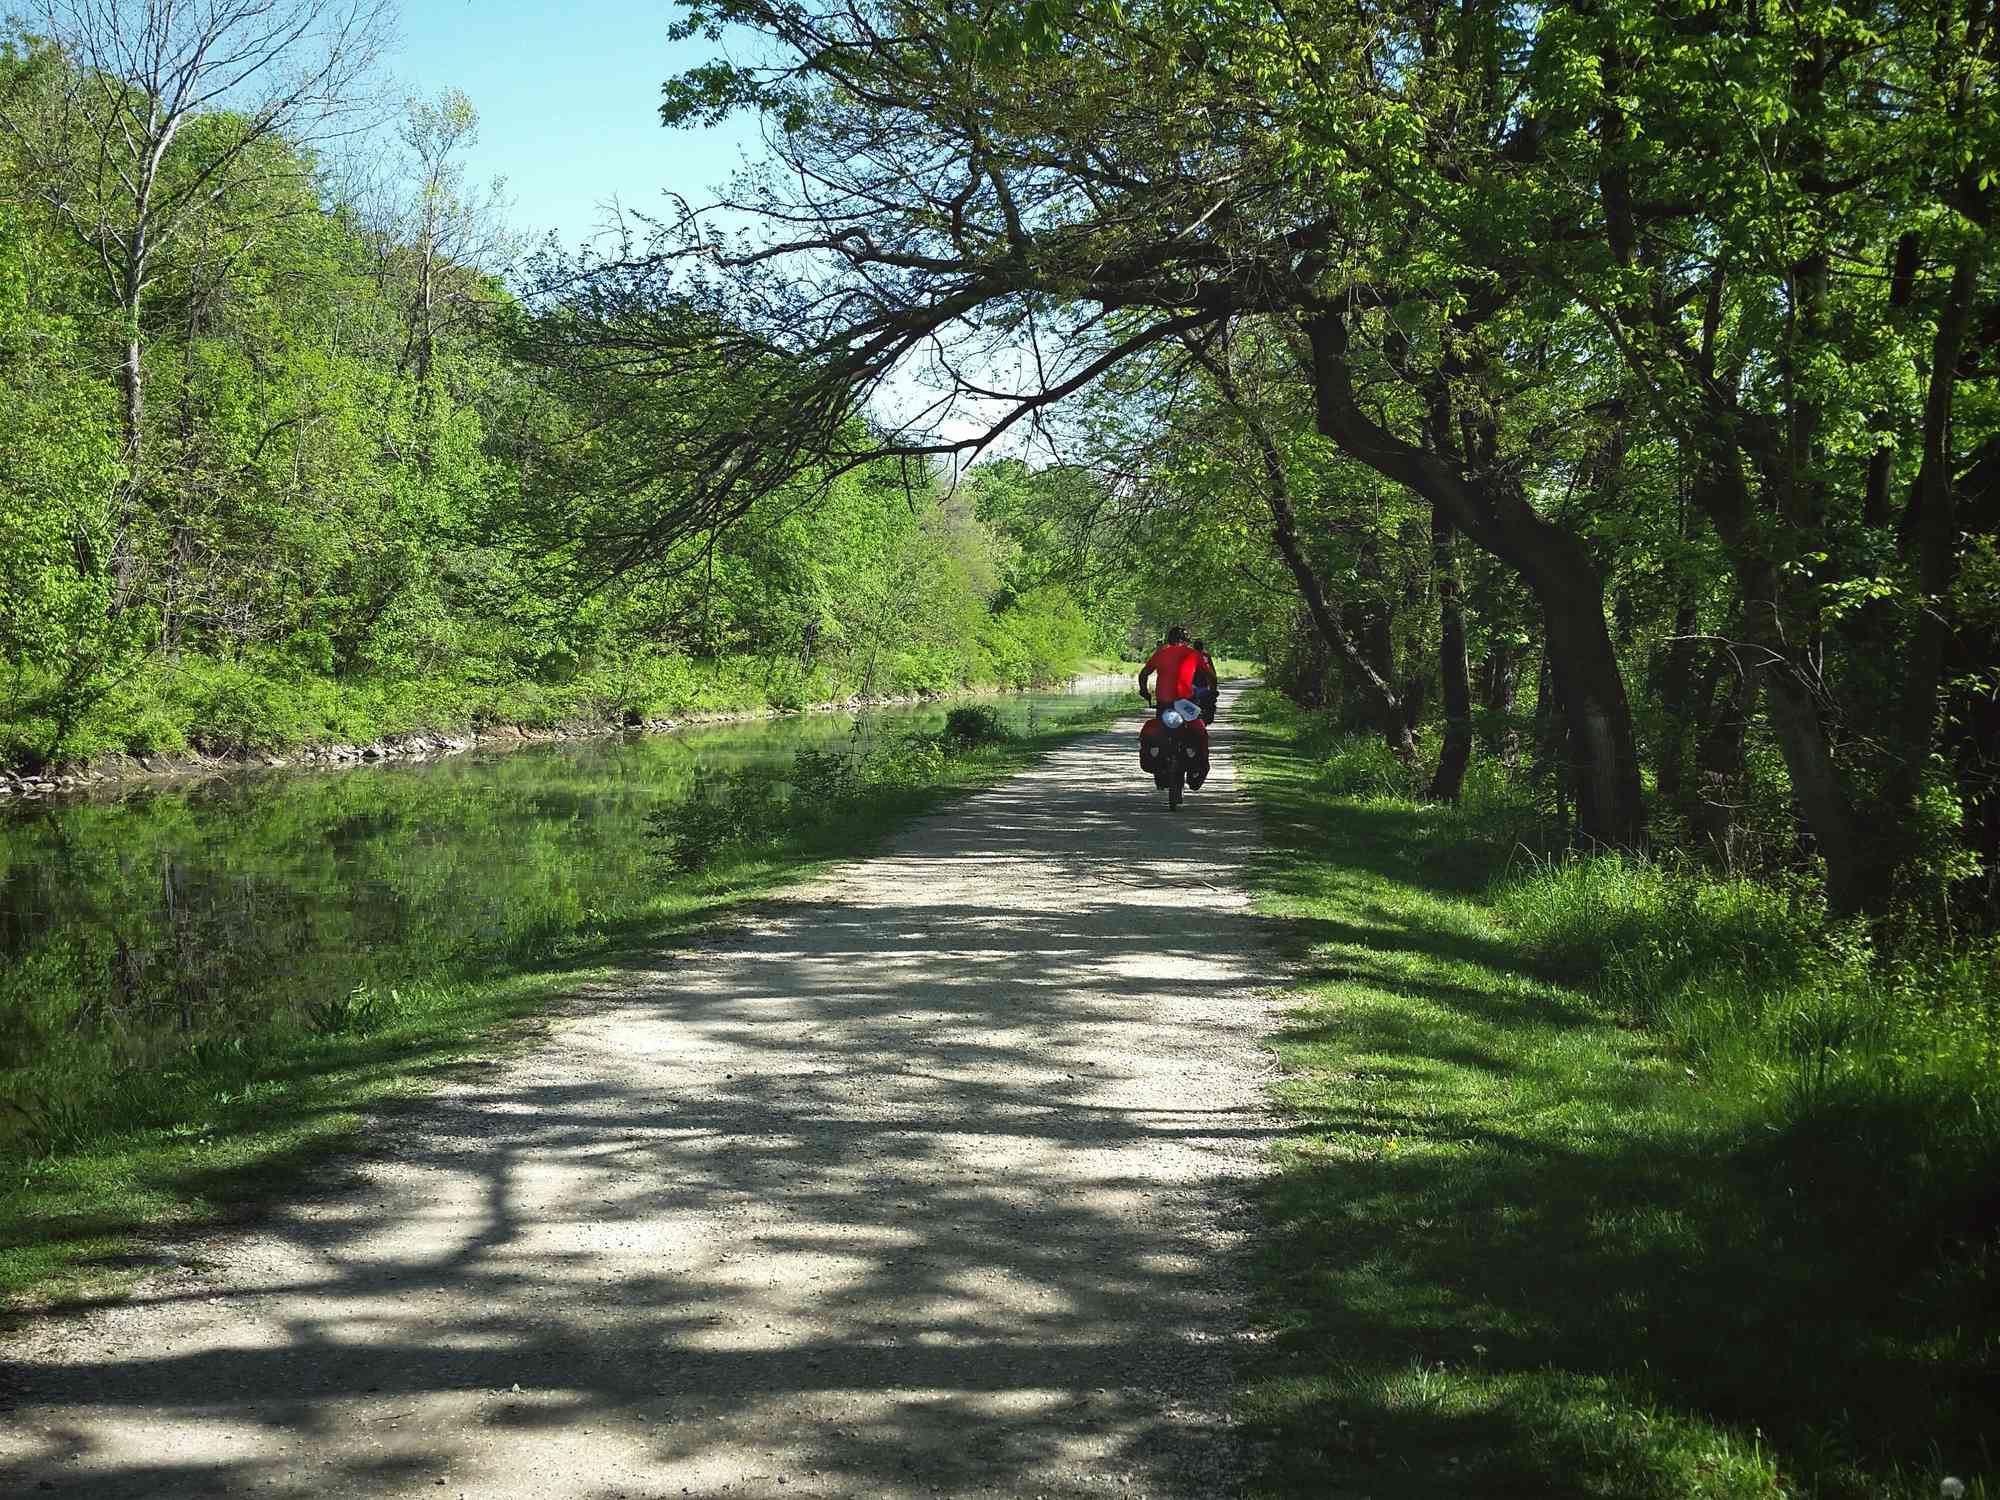 Cyclists ride down a gravel pathway next to a canal in a forest